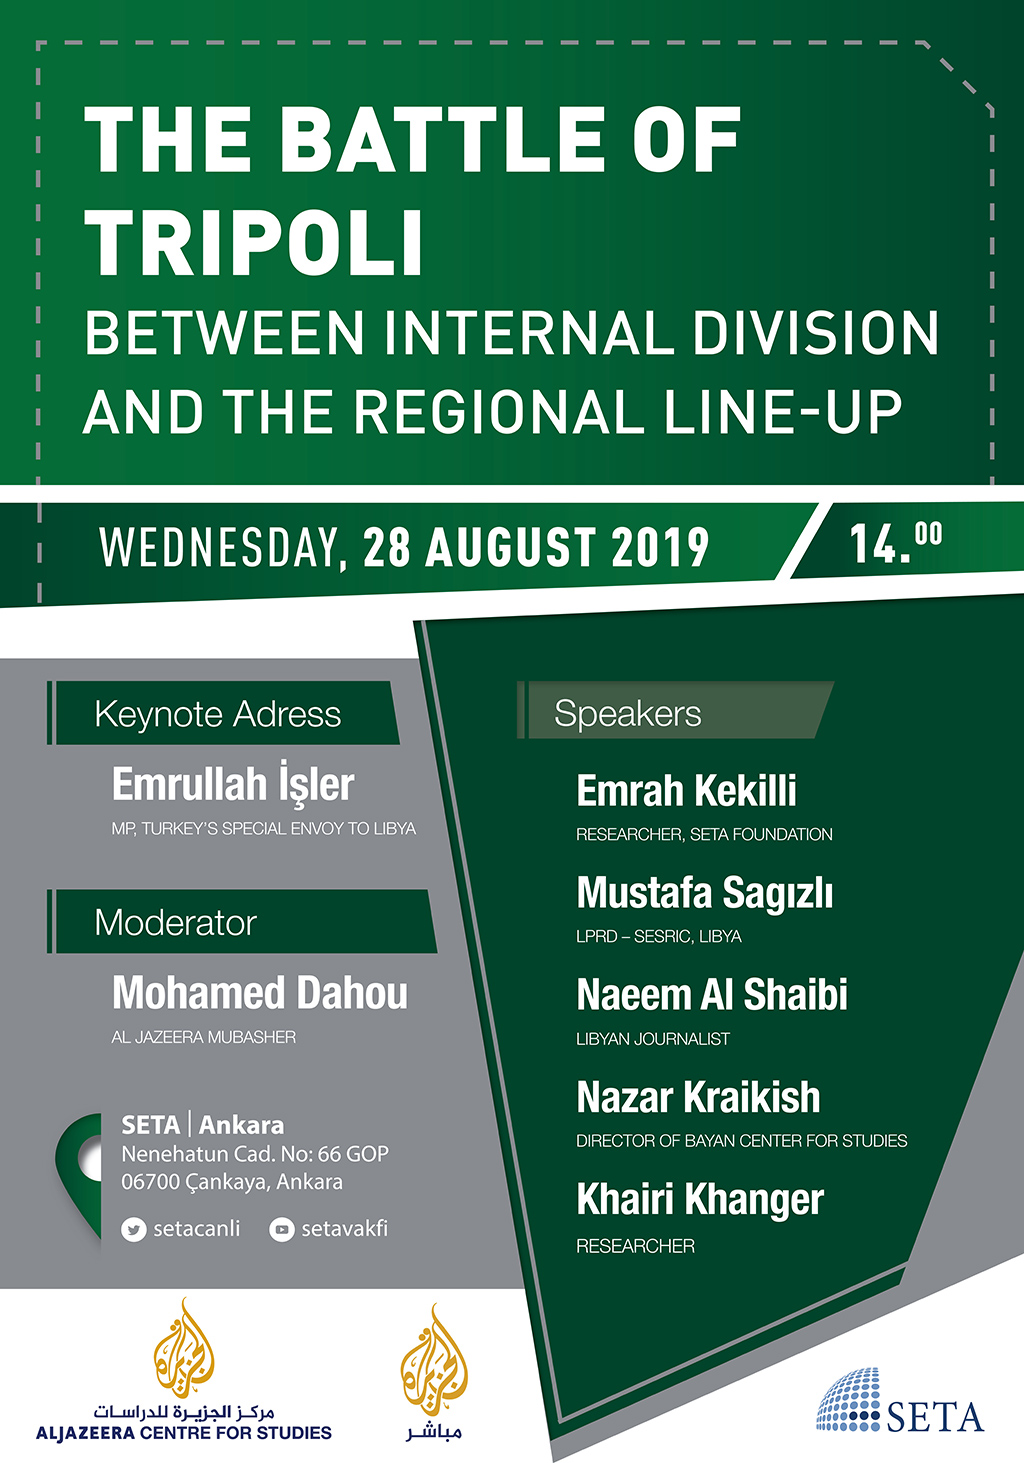 Panel: The Battle of Tripoli | Between Internal Division and the Regional Lineup